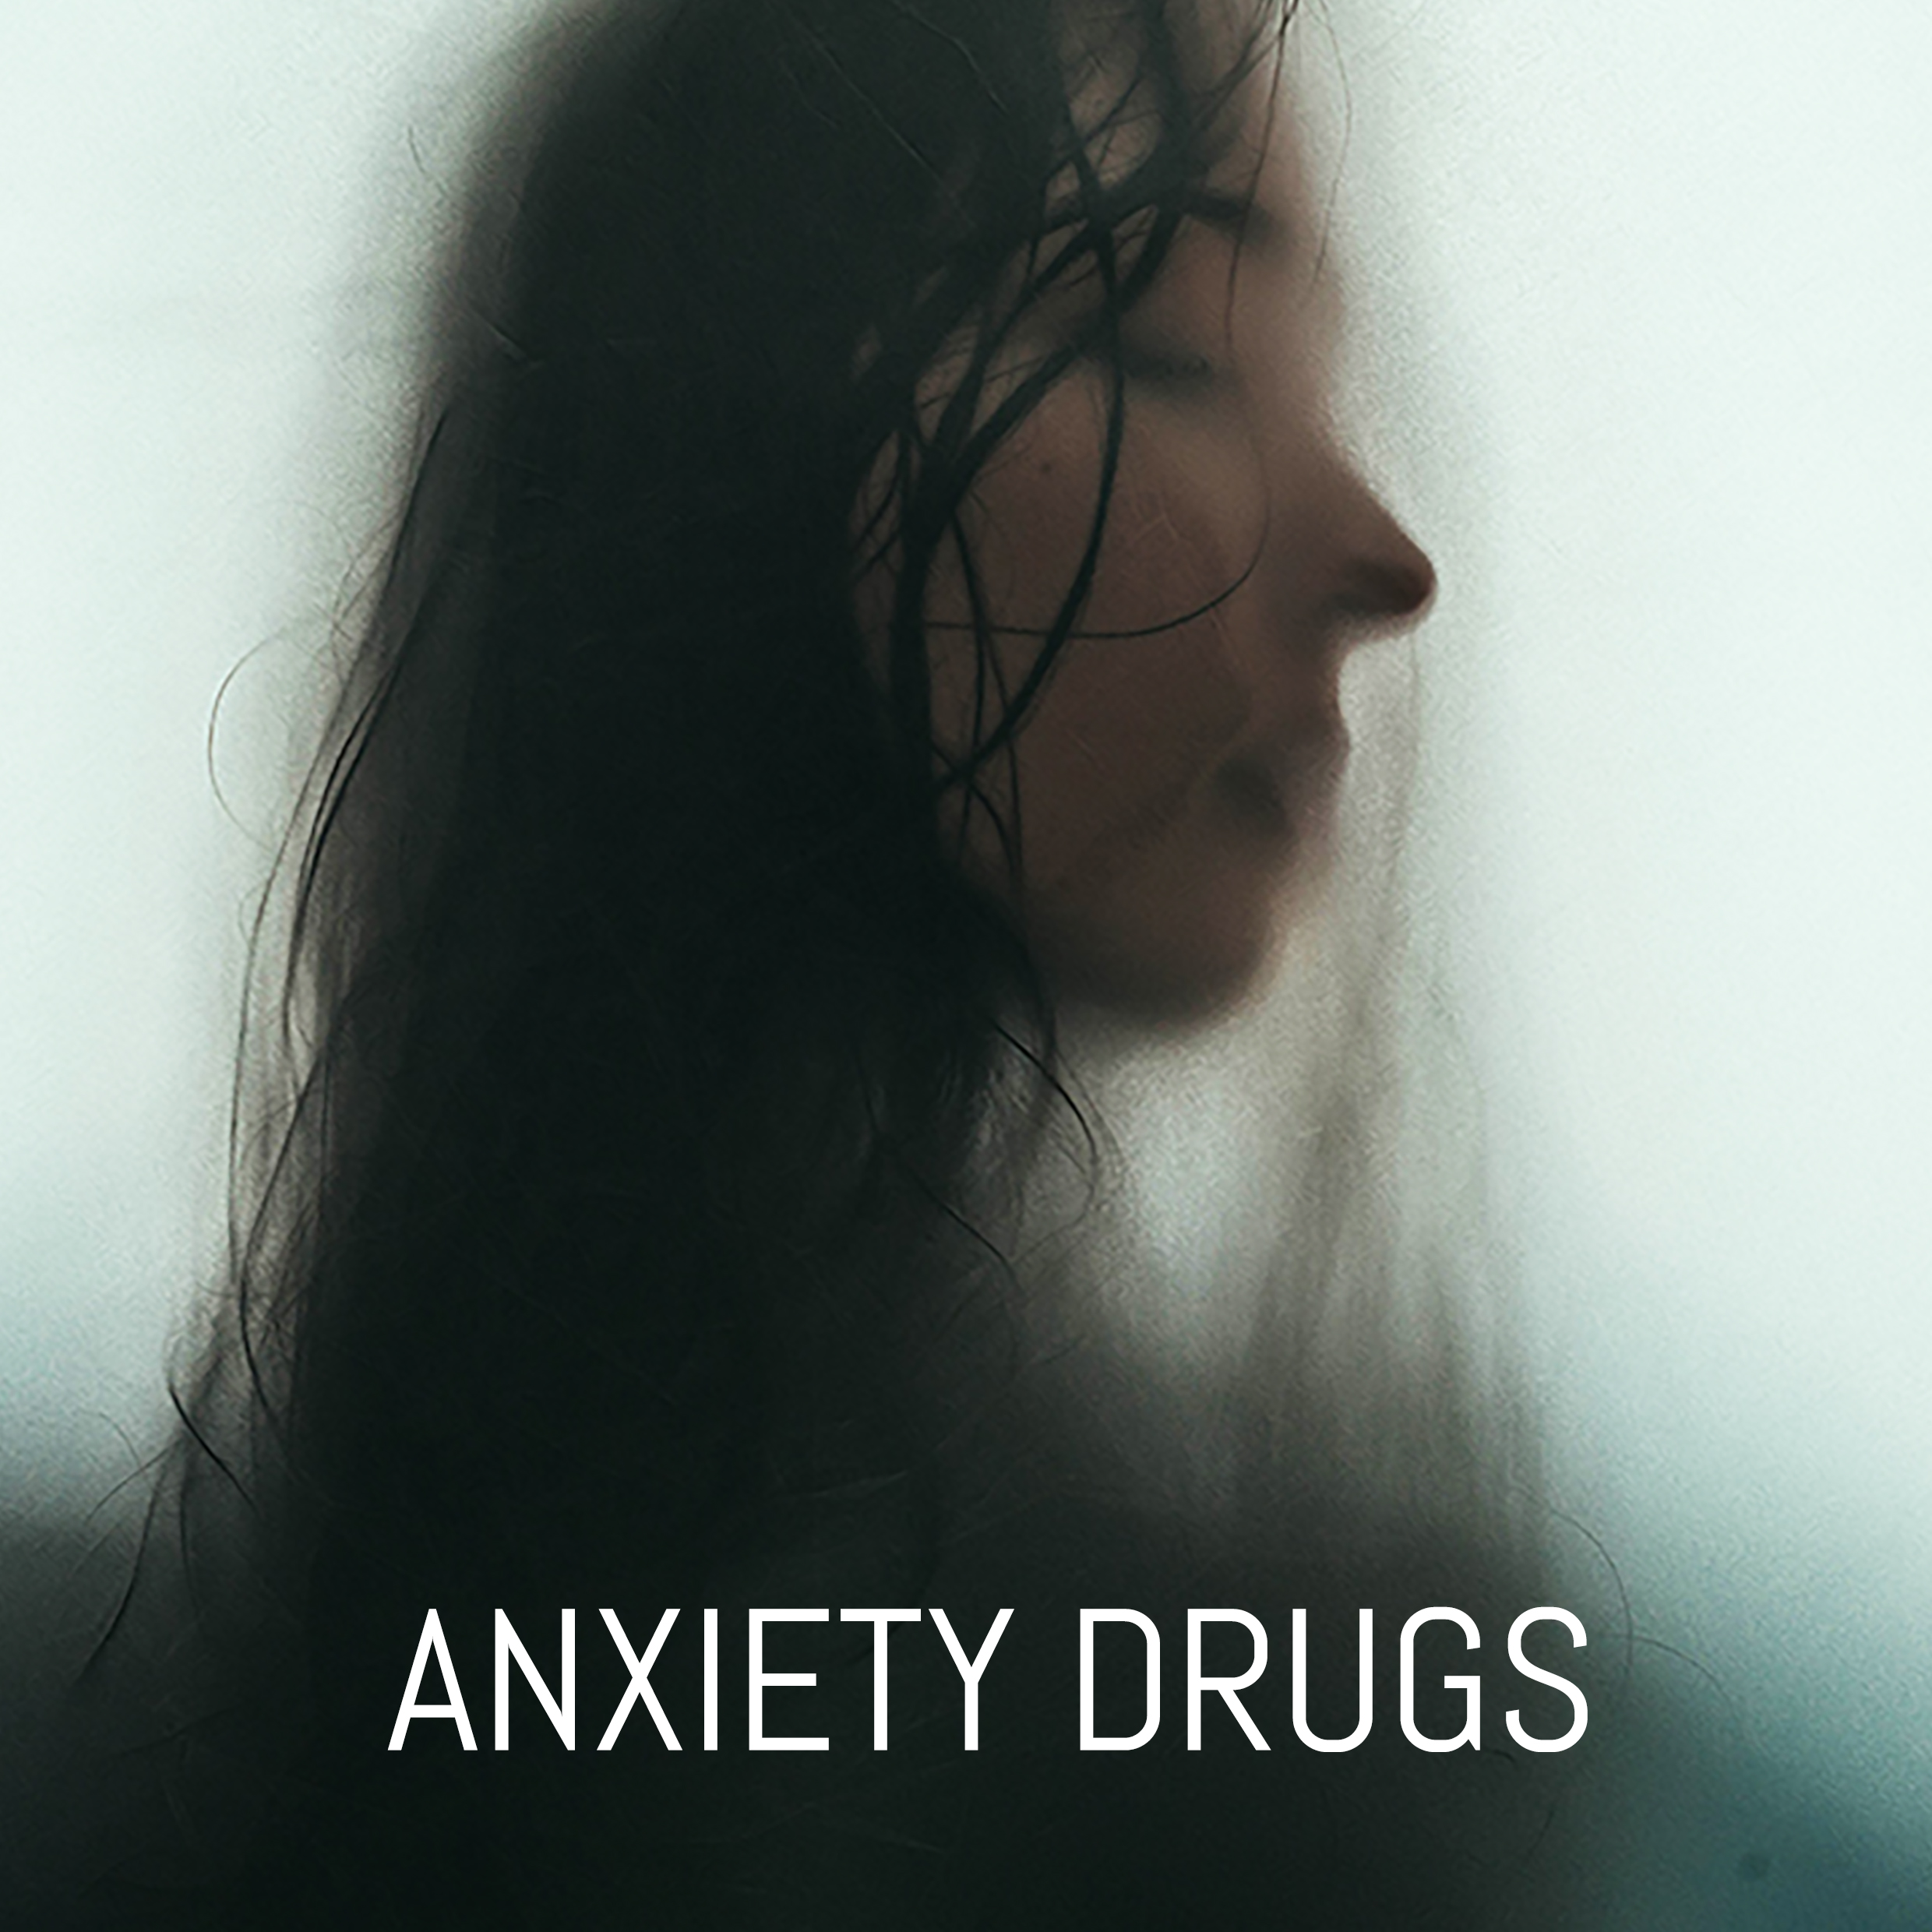 ALTERNATIVE TO ANXIETY DRUGS